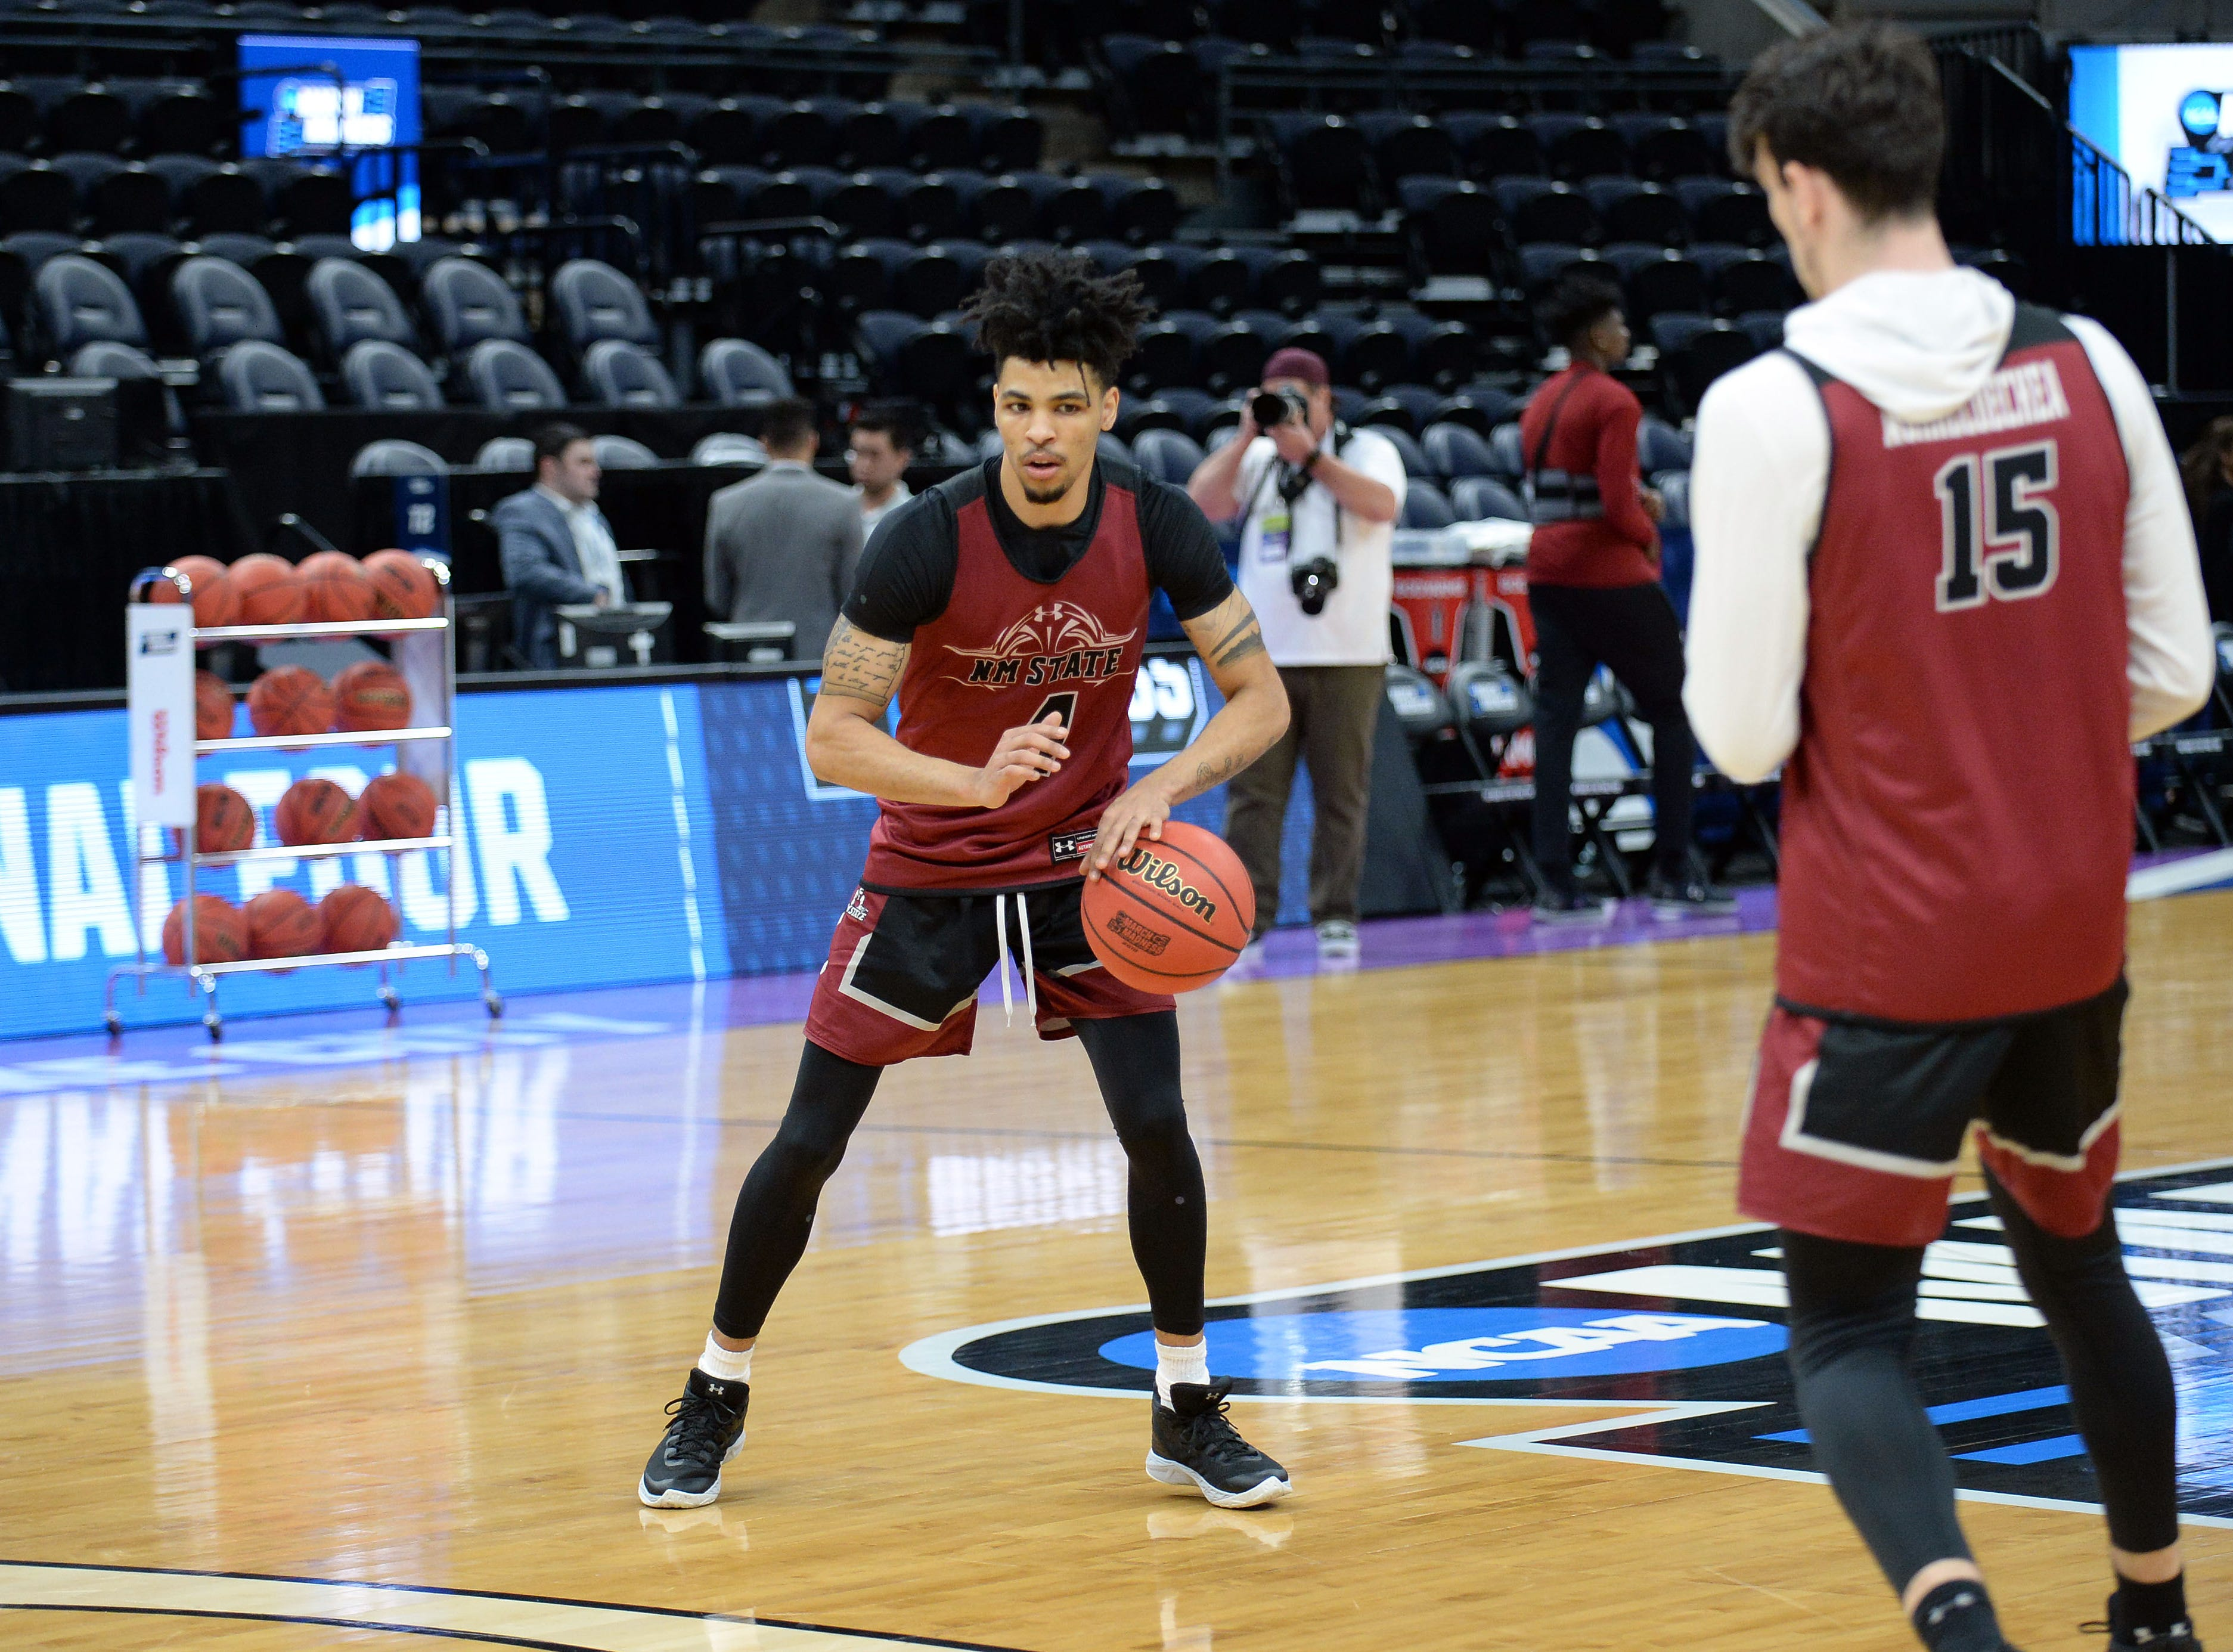 March 20, 2019; Salt Lake City, UT, USA; New Mexico State Aggies guard JoJo Zamora (4) during practice before the first round of the 2019 NCAA Tournament at Vivint Smart Home Arena. Mandatory Credit: Gary A. Vasquez-USA TODAY Sports